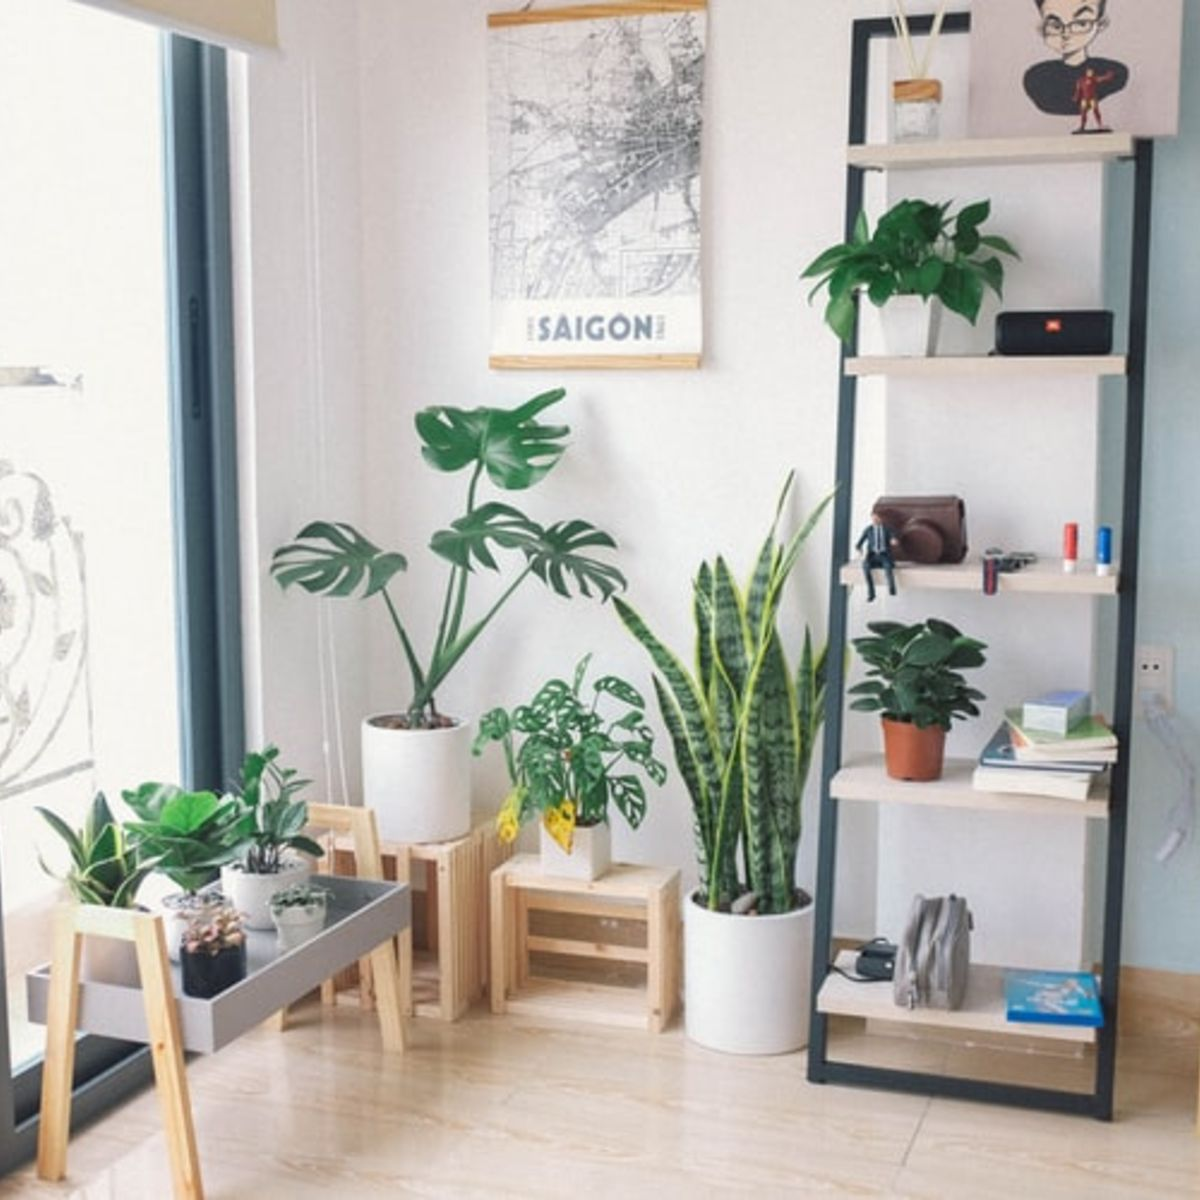 siteassets/img/article/inspiration/plants/new-interior-9.jpg